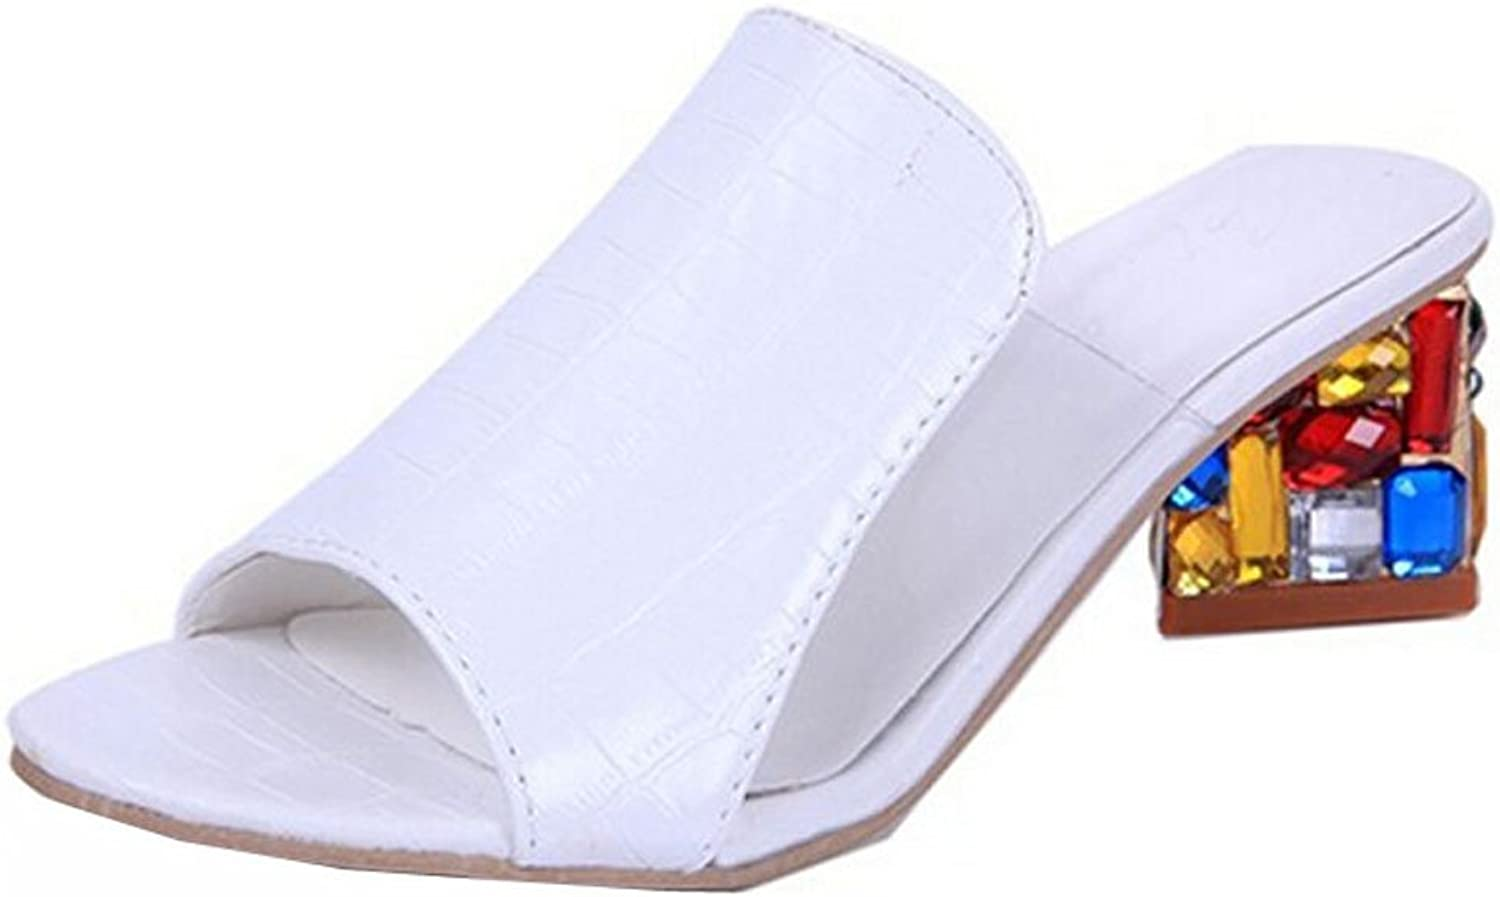 Women sandals for Lady shoes Slipper Rhinestone high wedge open toe shoes sandals